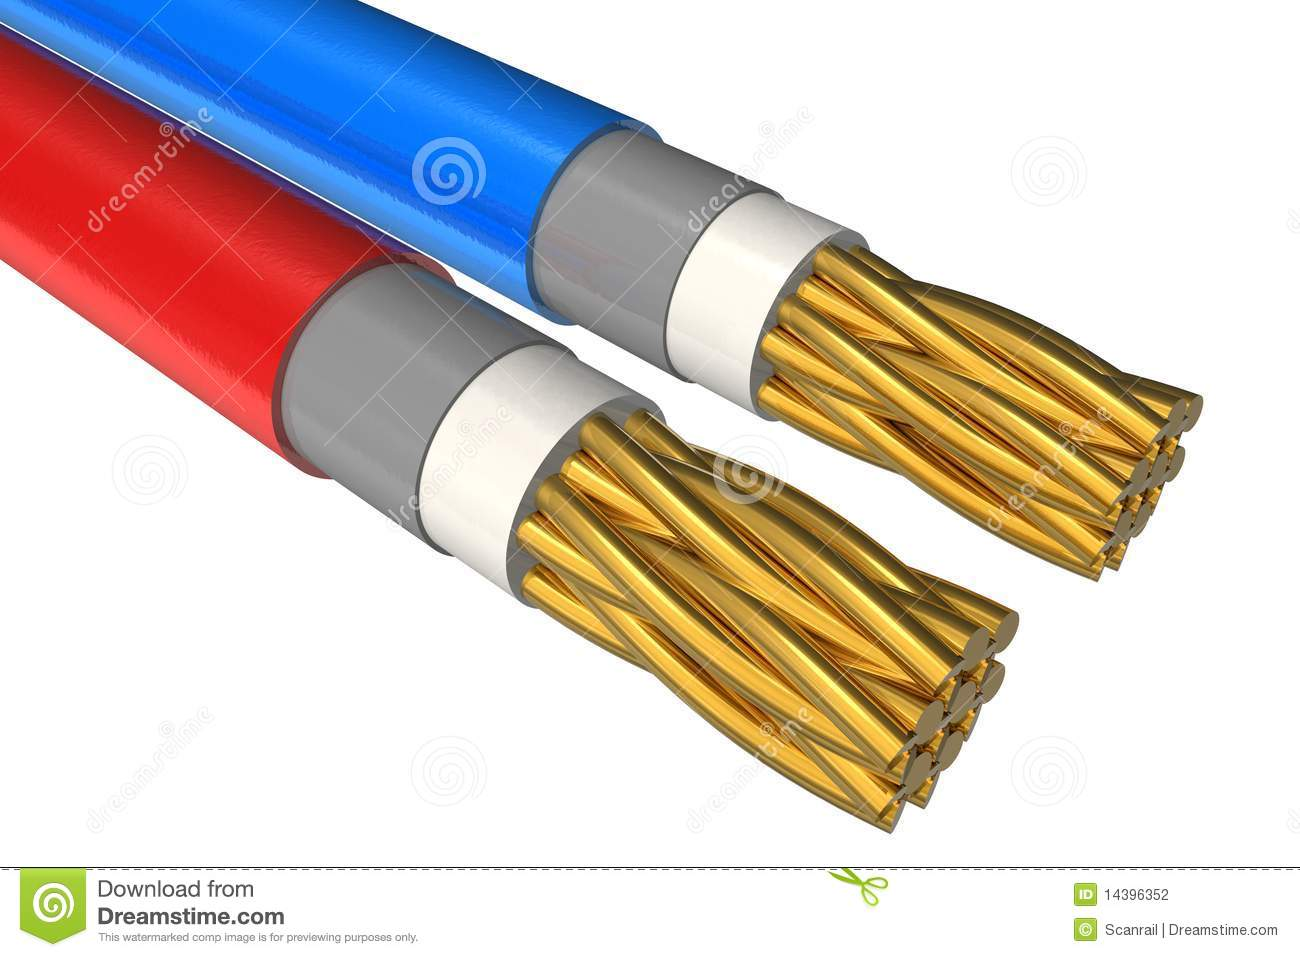 High Voltage Electrical Wire : High voltage power cable close up stock illustration